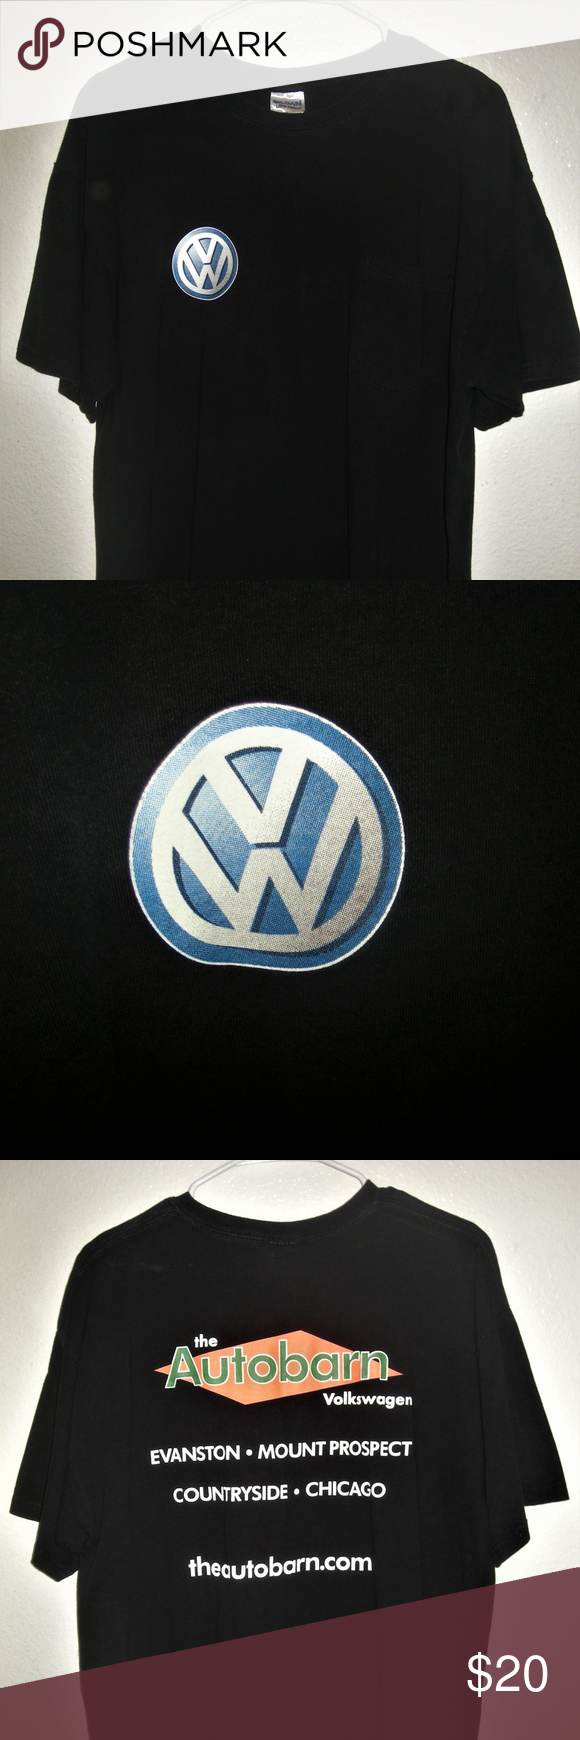 Vw Volkswagen S S Pocketed 2 Sided Crew Neck Shirt Crew Neck Shirt Neck Shirt Clothes Design